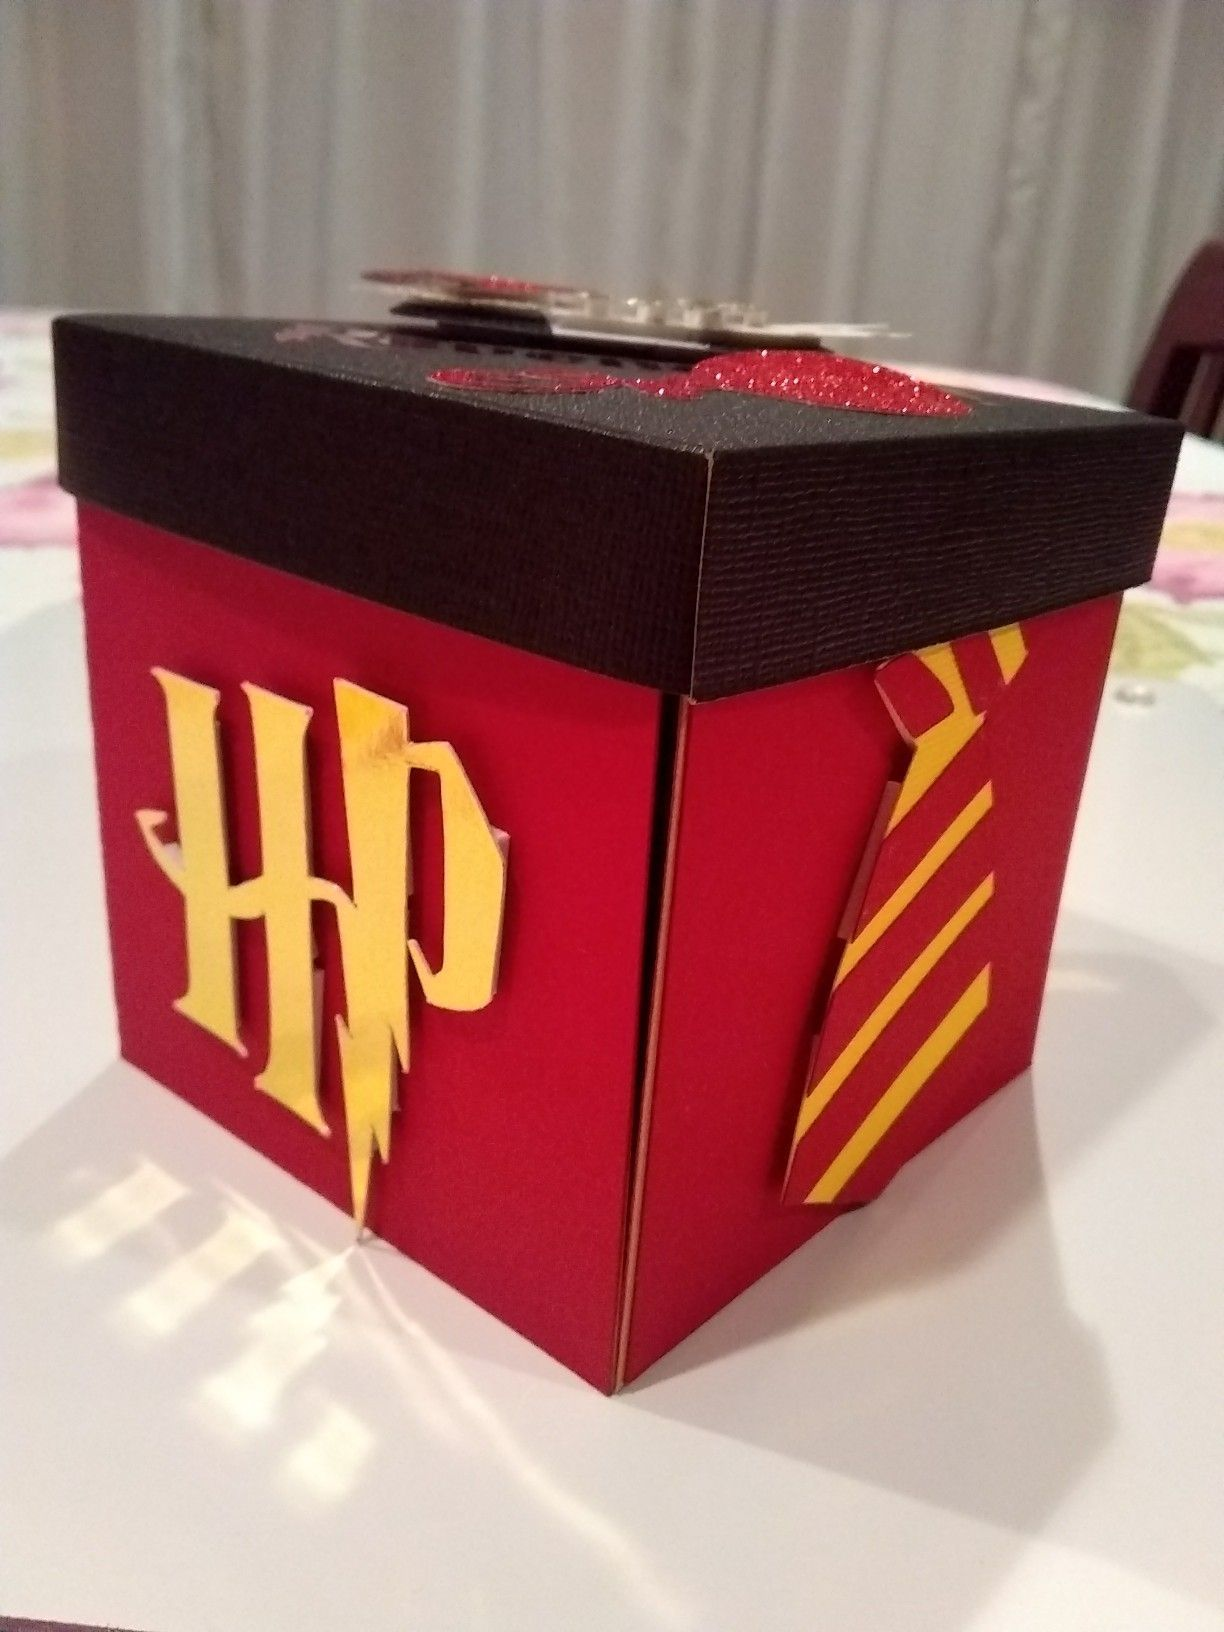 40 Diy Ideas To Make Your Bedroom Feel Bigger Pins Time Pinterest Blog Harry Potter Costumes In 2020 Harry Potter Valentines Harry Potter Gift Box Harry Potter Gifts